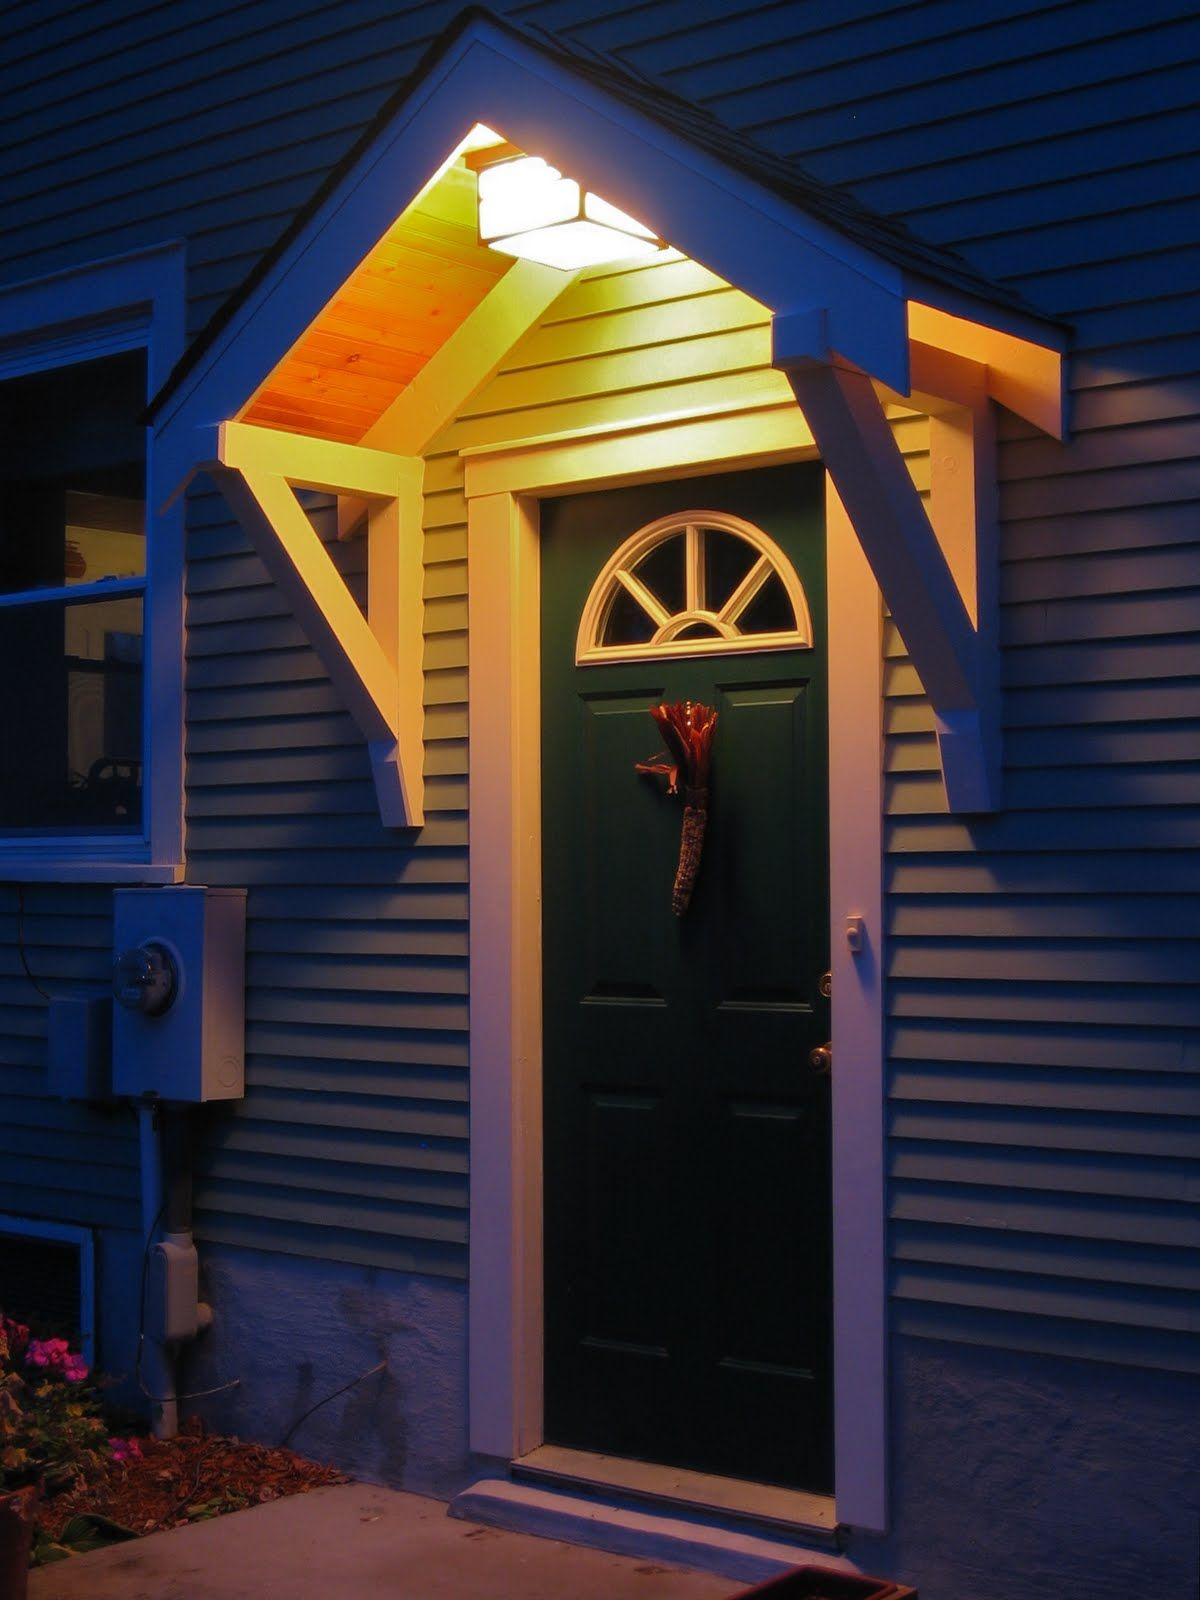 Since we bought the house we always thought the side door entrance needed an overhang & roof over front door entrance | Bungalow Restoration: Side door ... Pezcame.Com